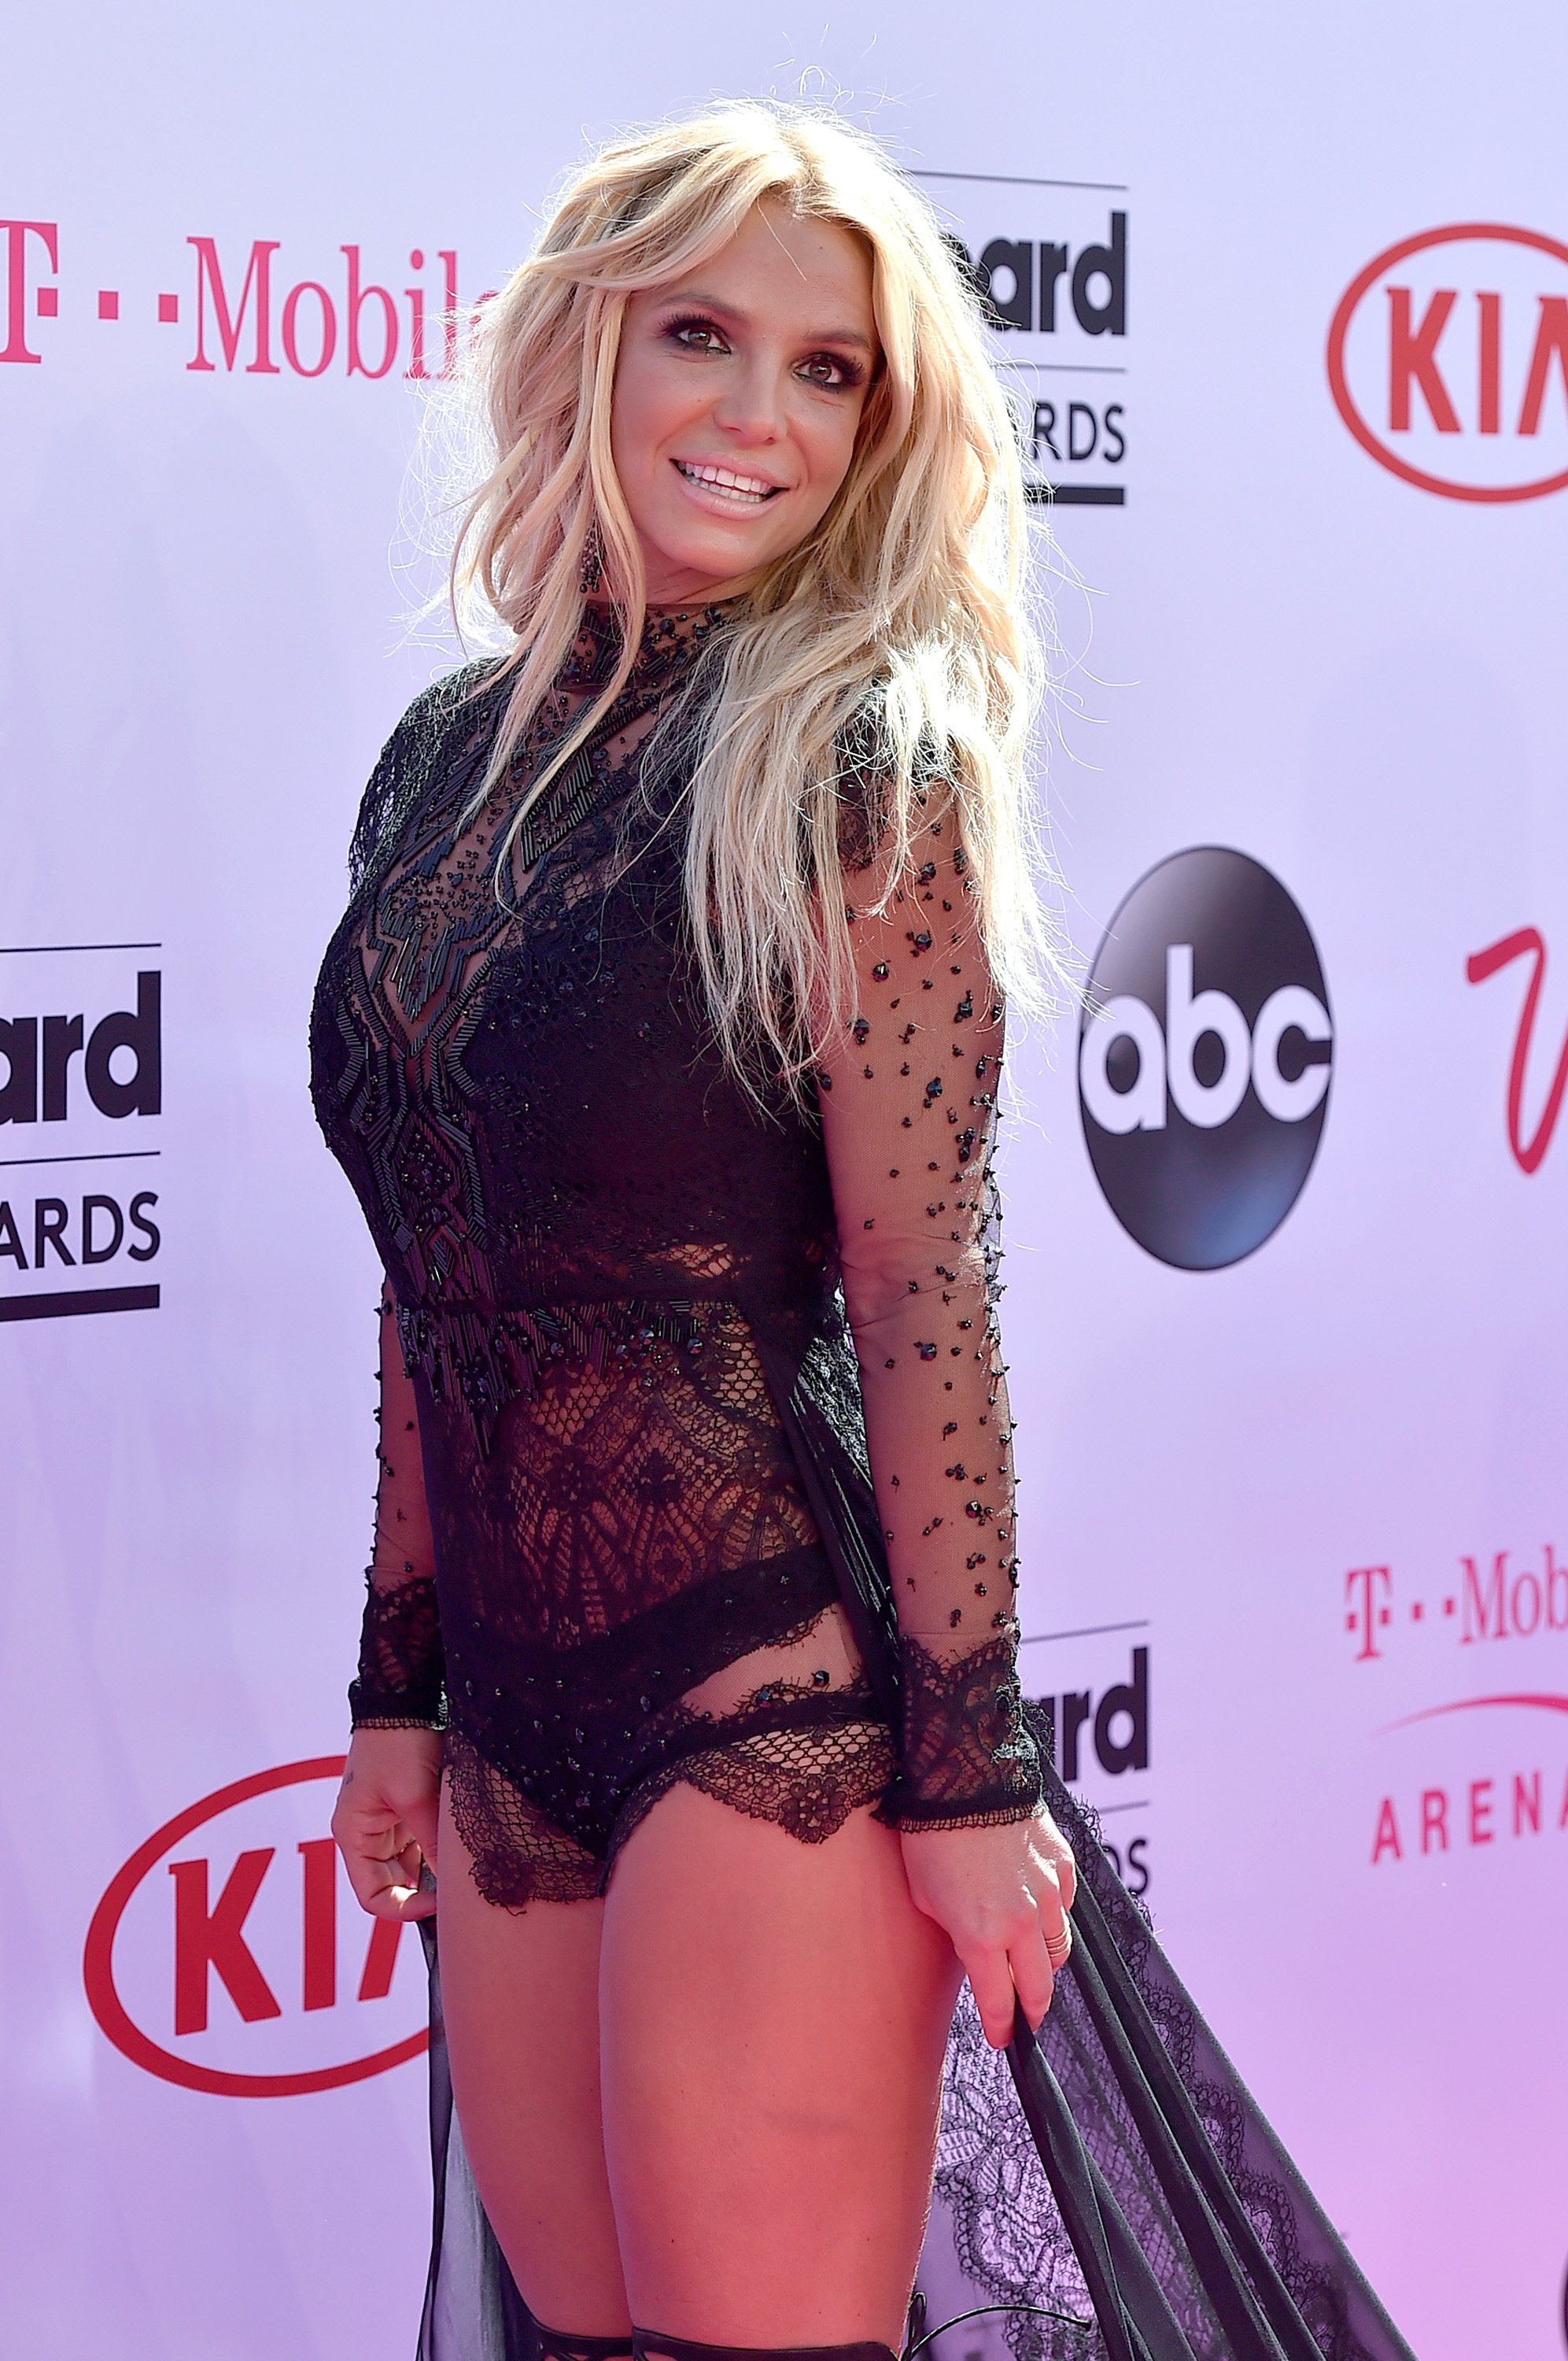 Rep-Britney-Spears-Not-Contributing-In-Any-Way-Shape-Or-Form-To-Lifetime-Biopic